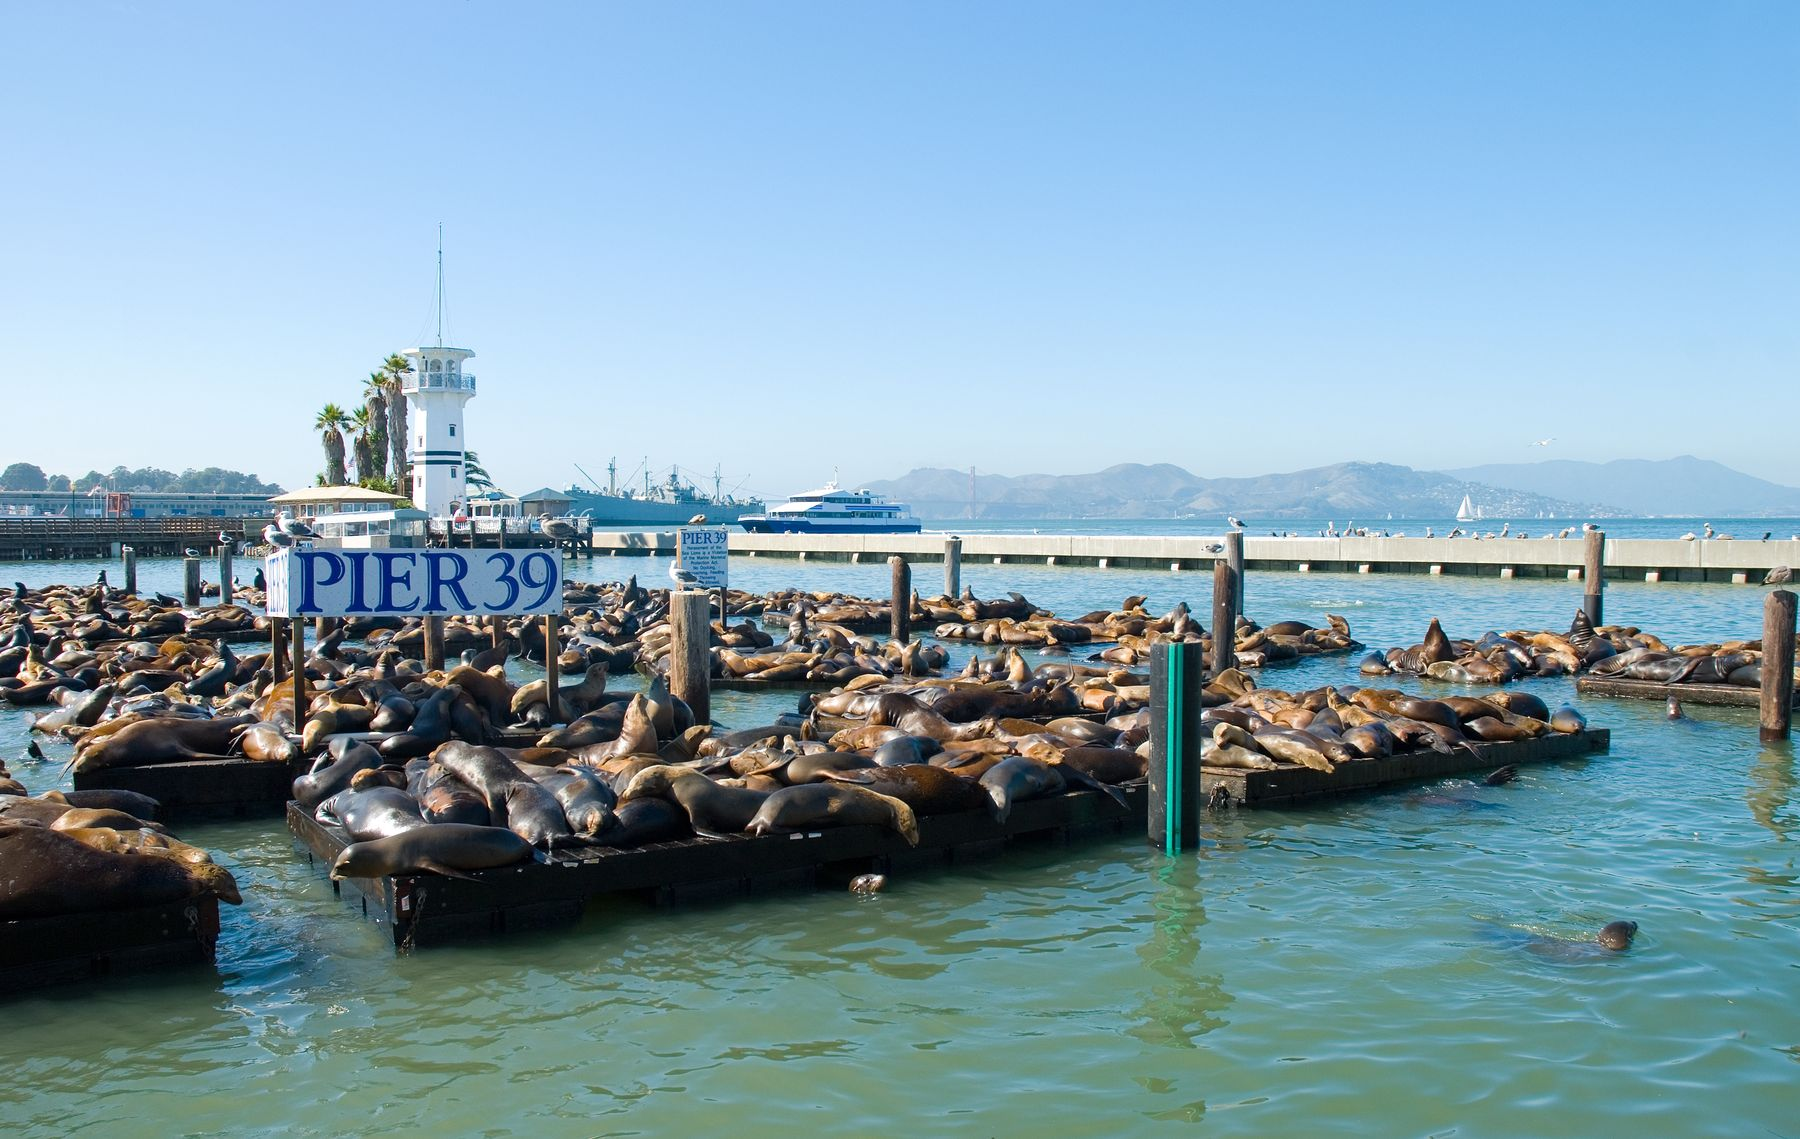 Sea lions lounging at Pier 39